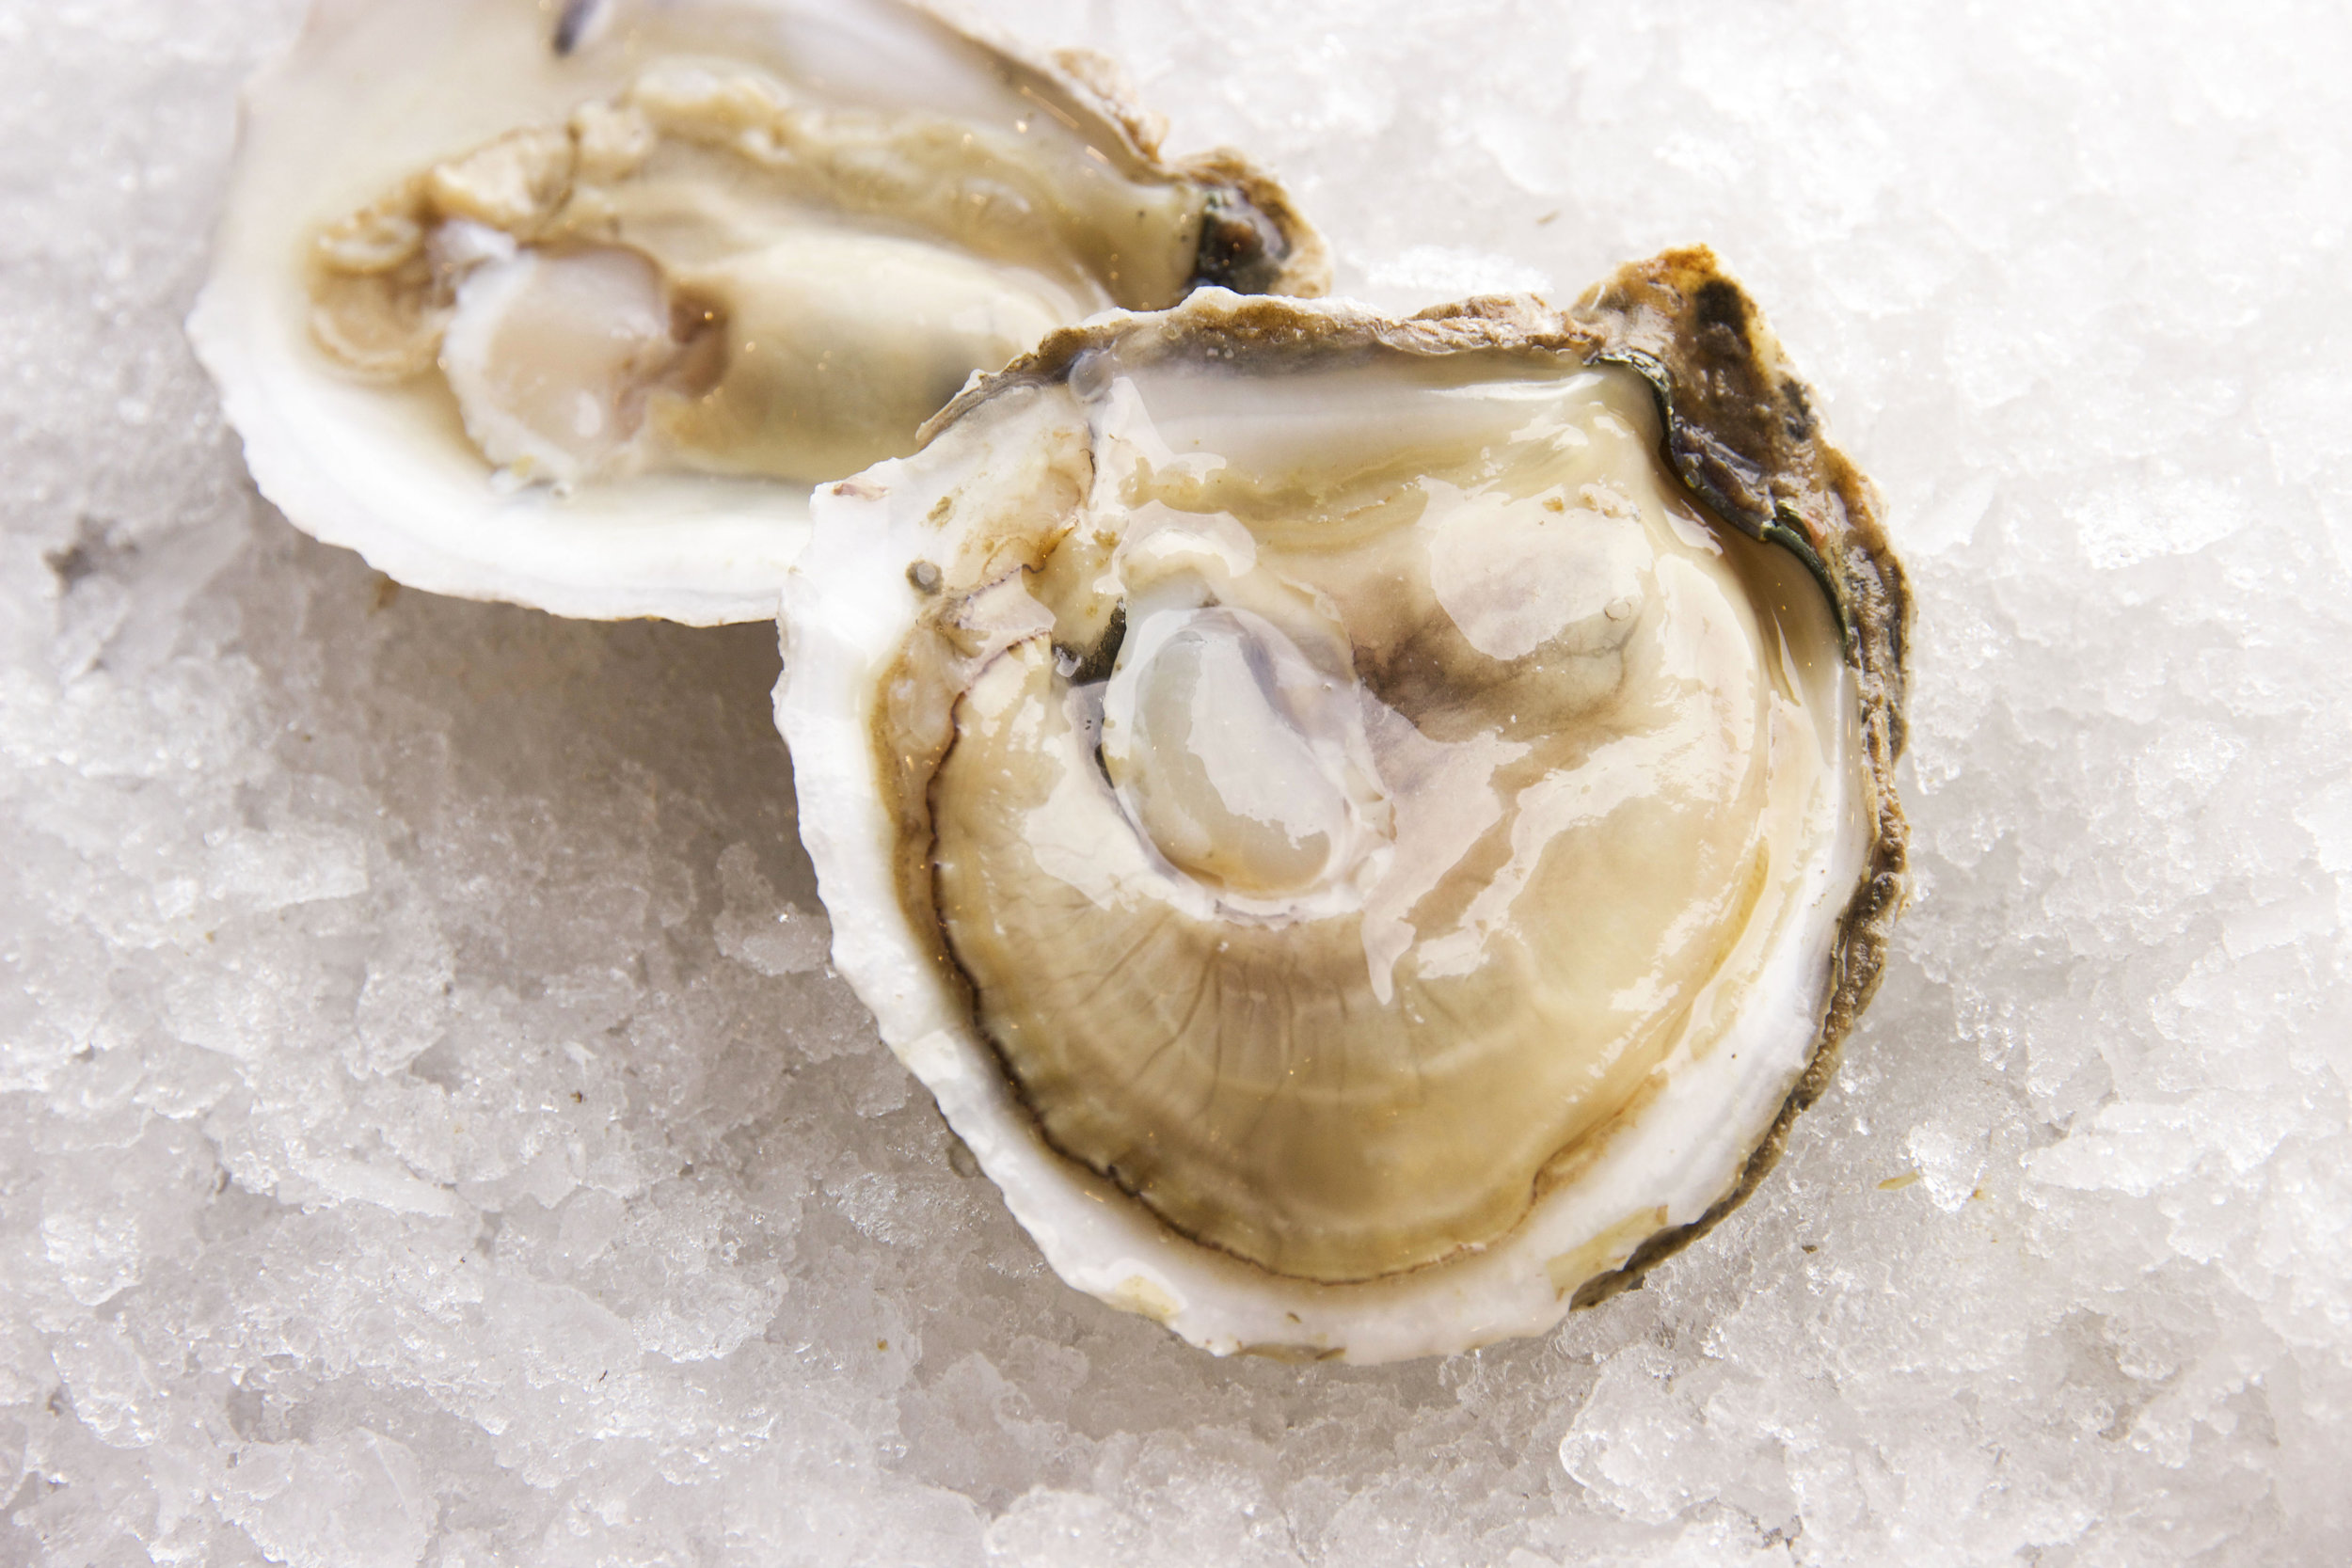 jAMES rIVER oYSTERS